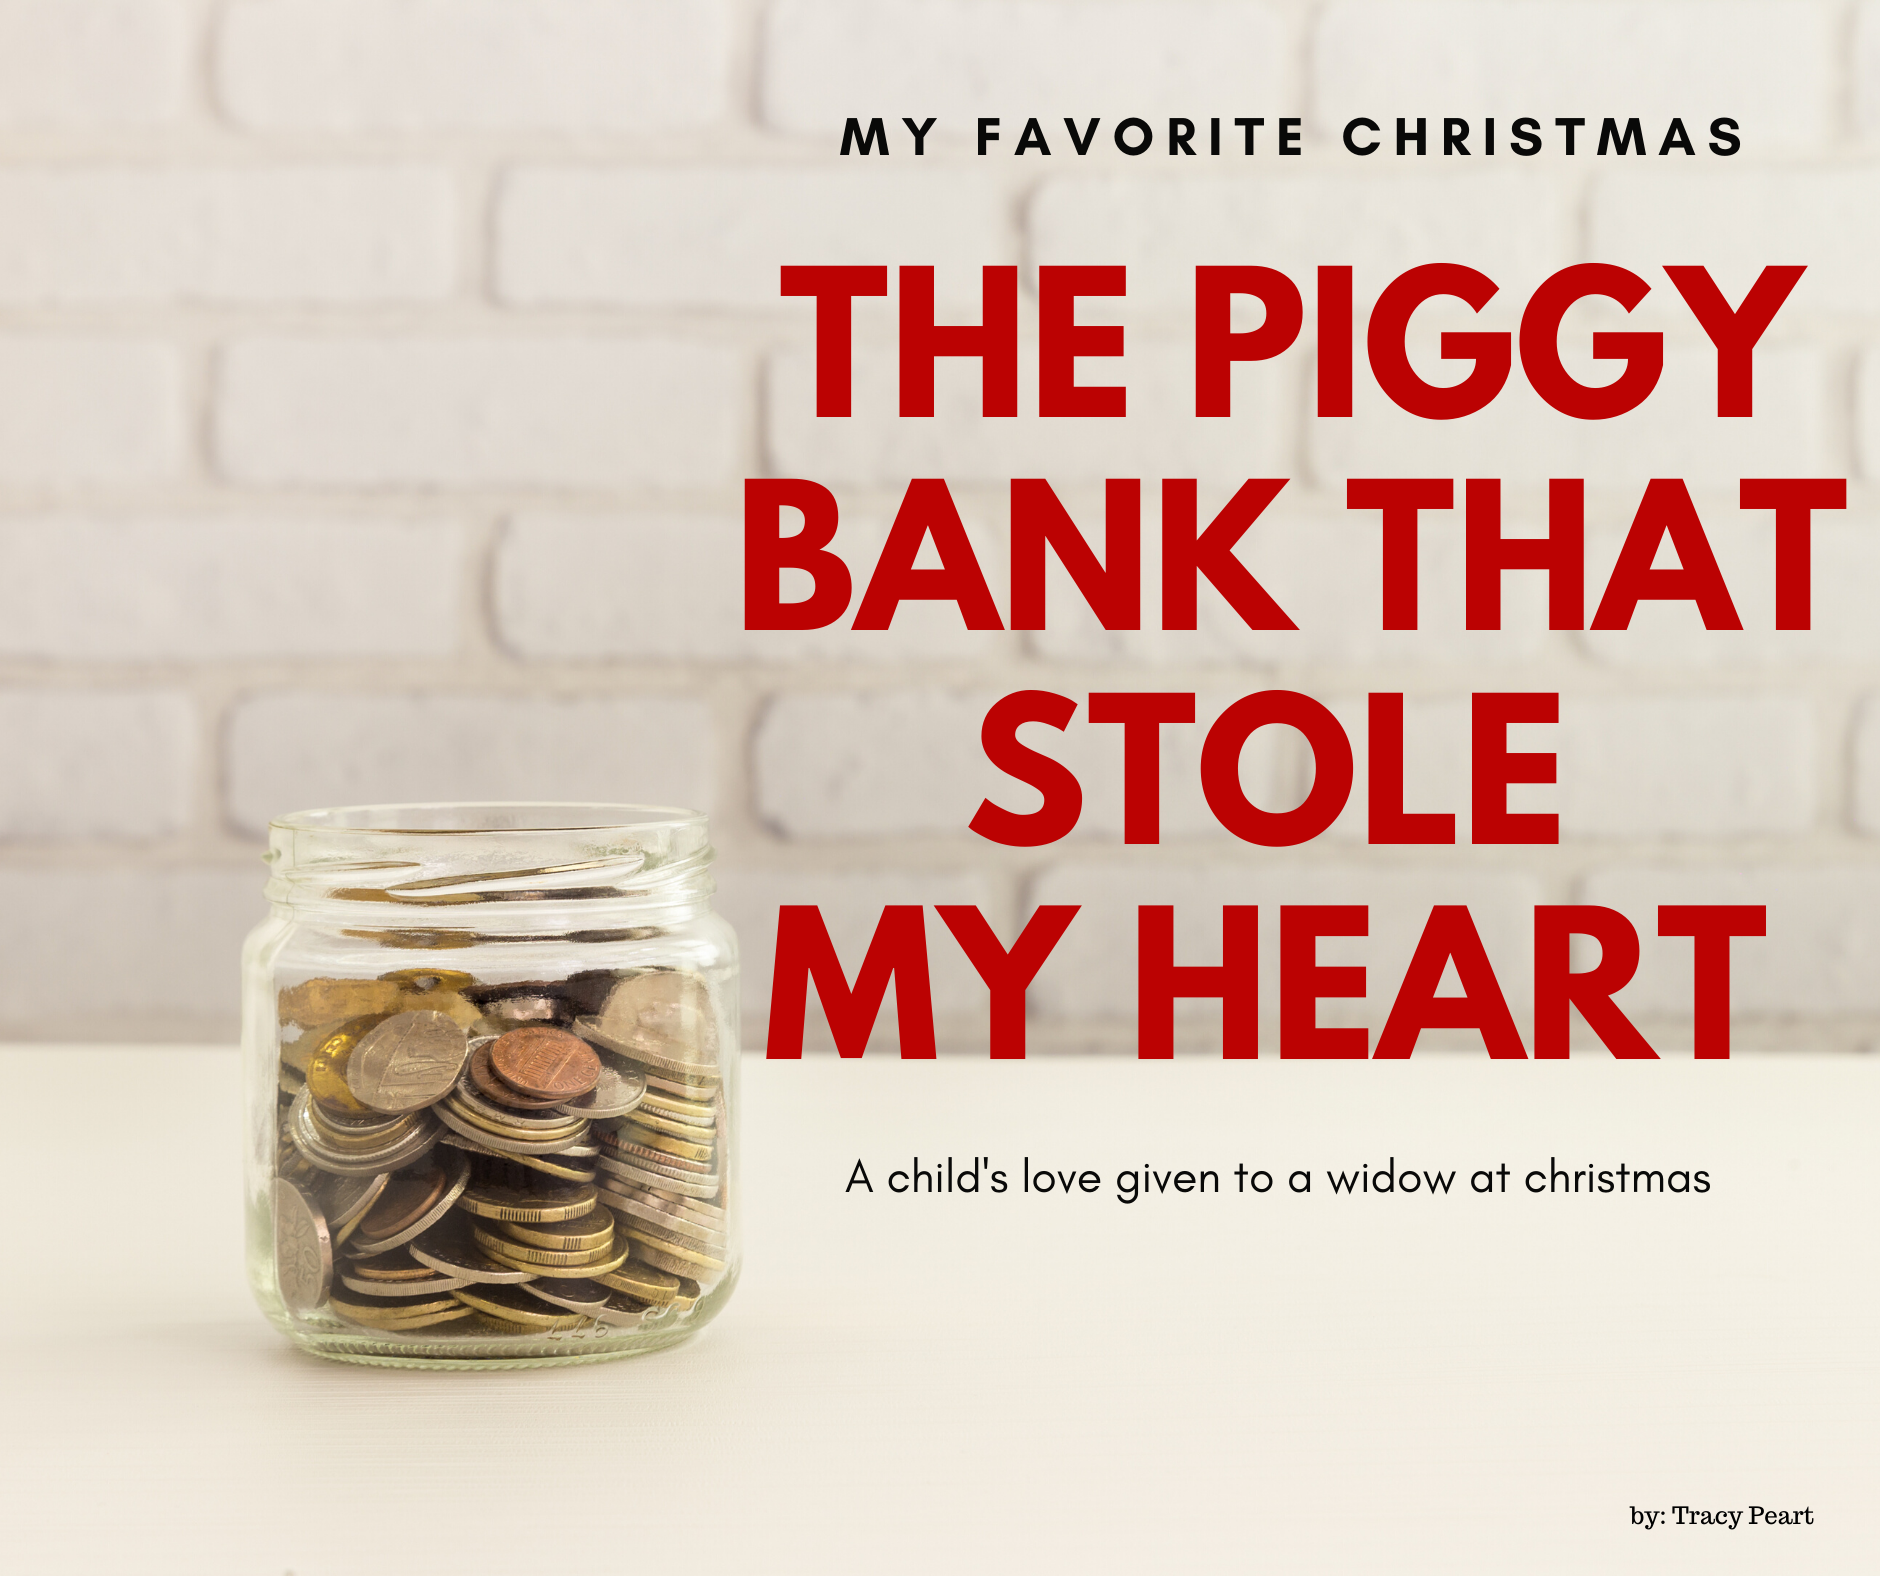 The piggy bank that stole my heart (5)